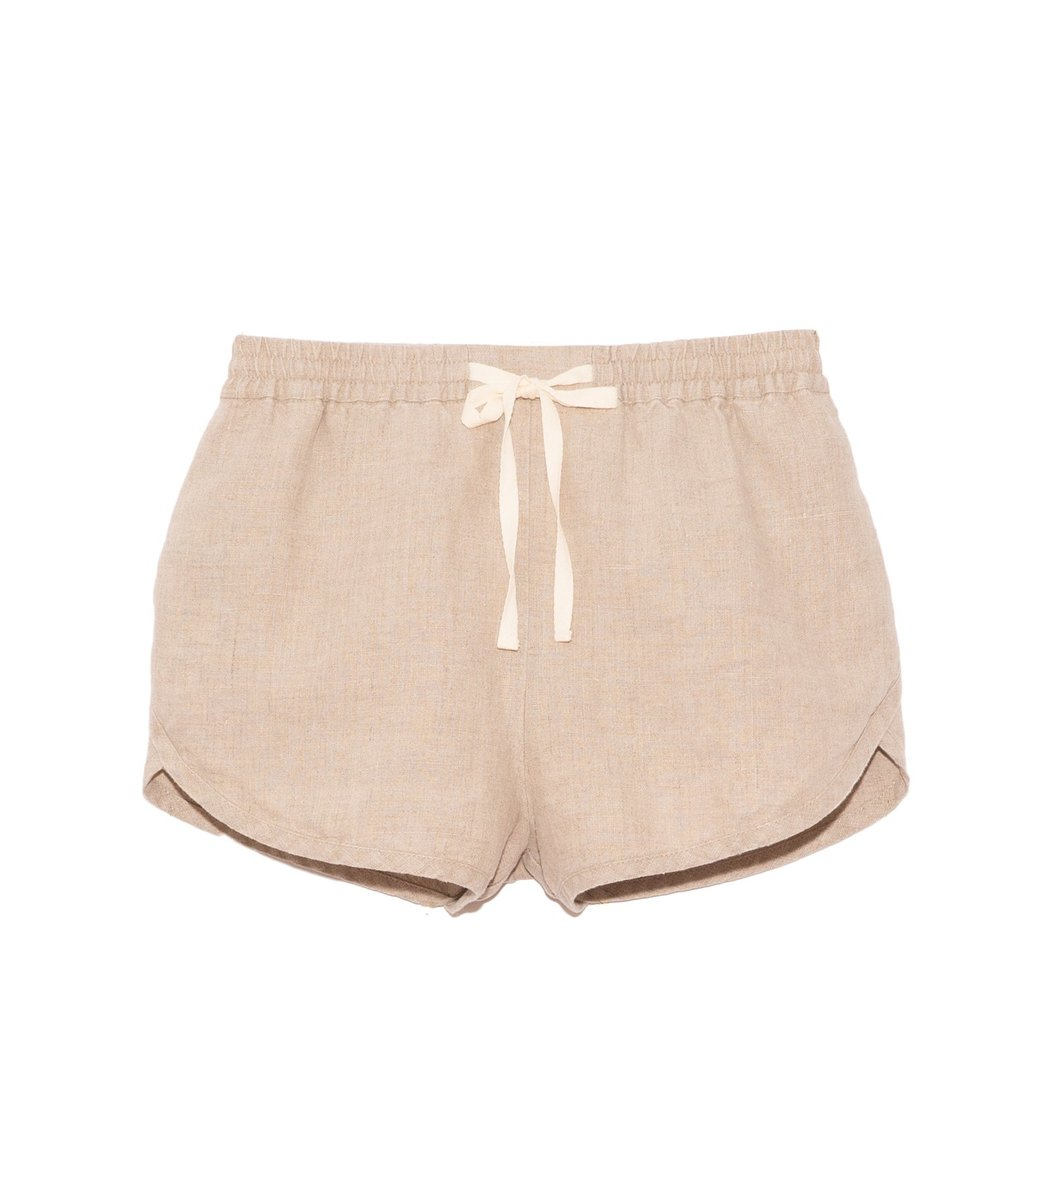 Rachel Comey Practico Shorts in Natural